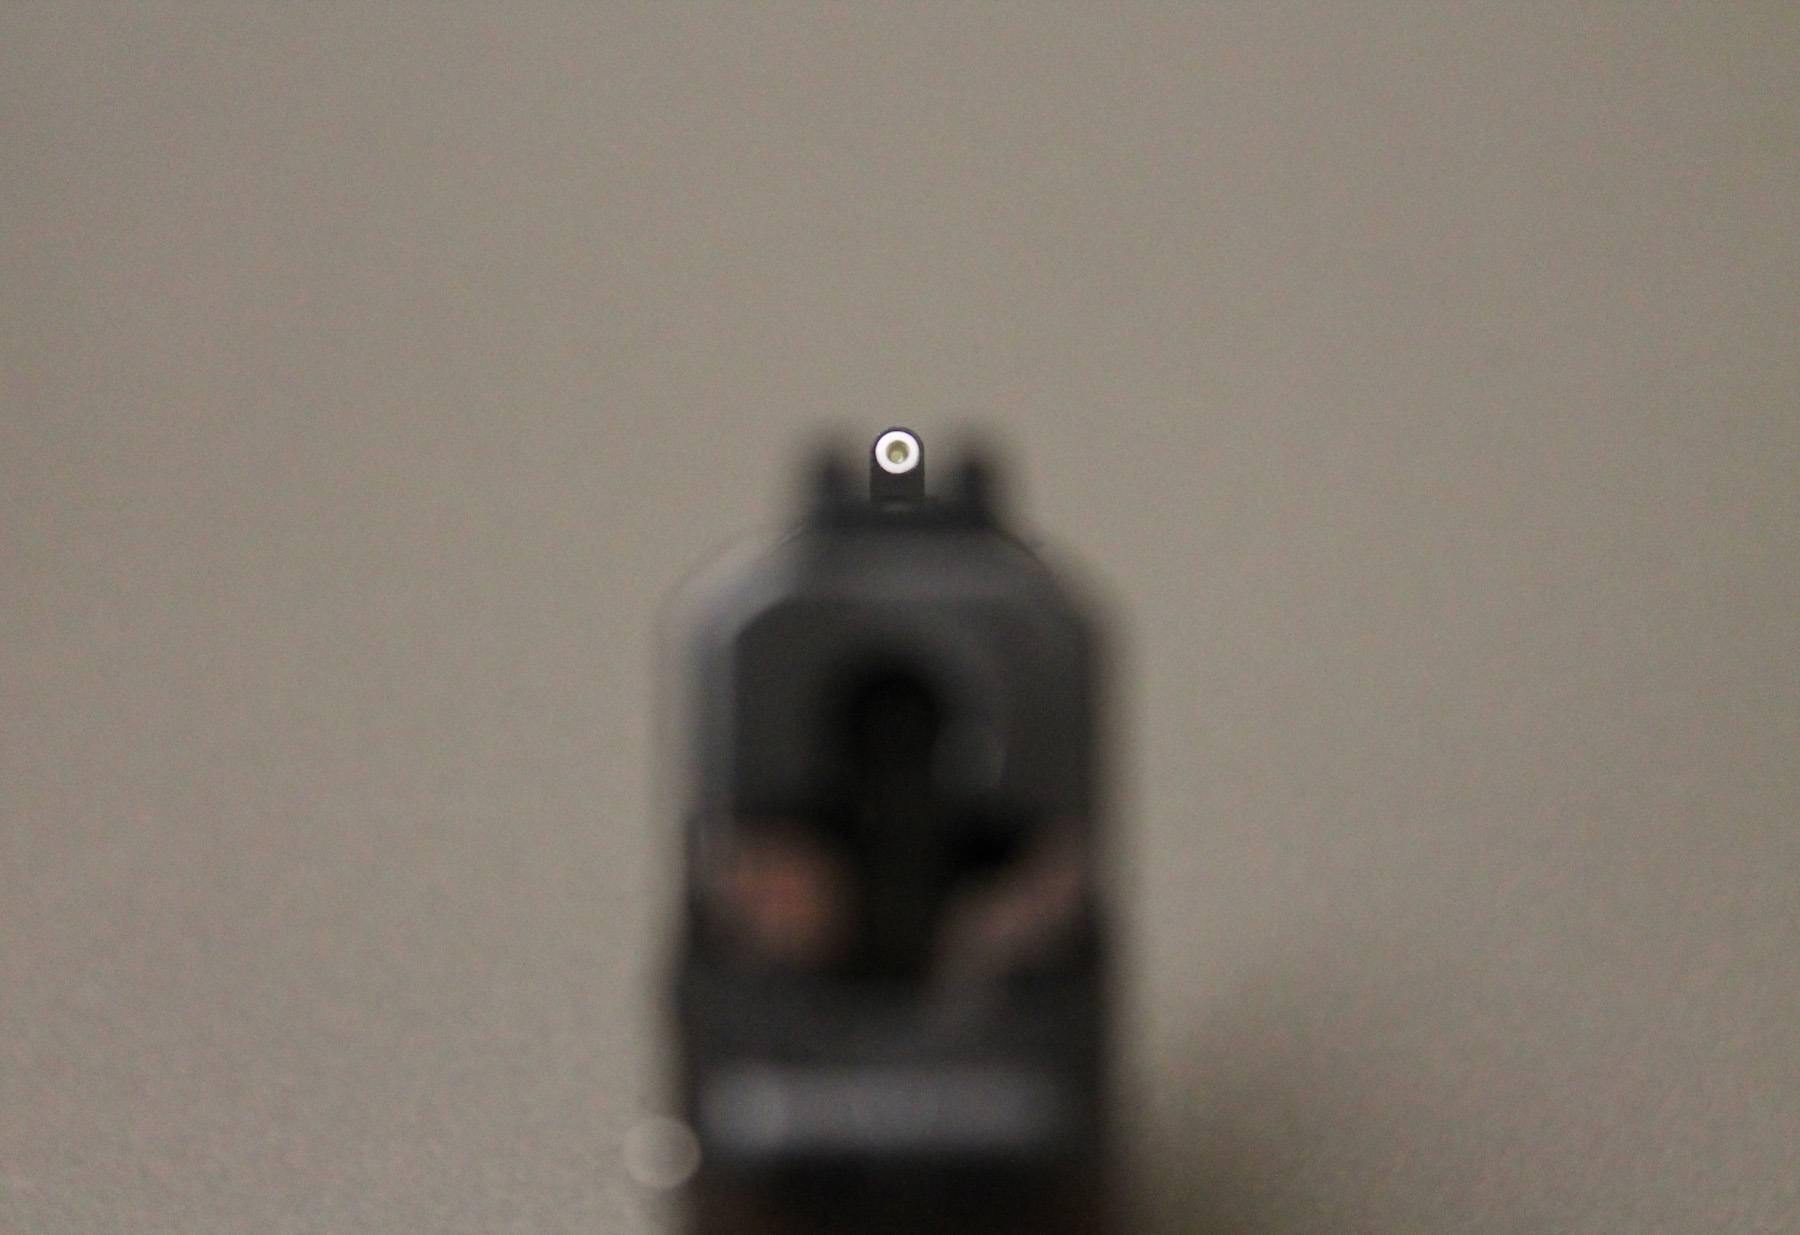 Smith & Wesson Bodyguard 380 XS sight picture